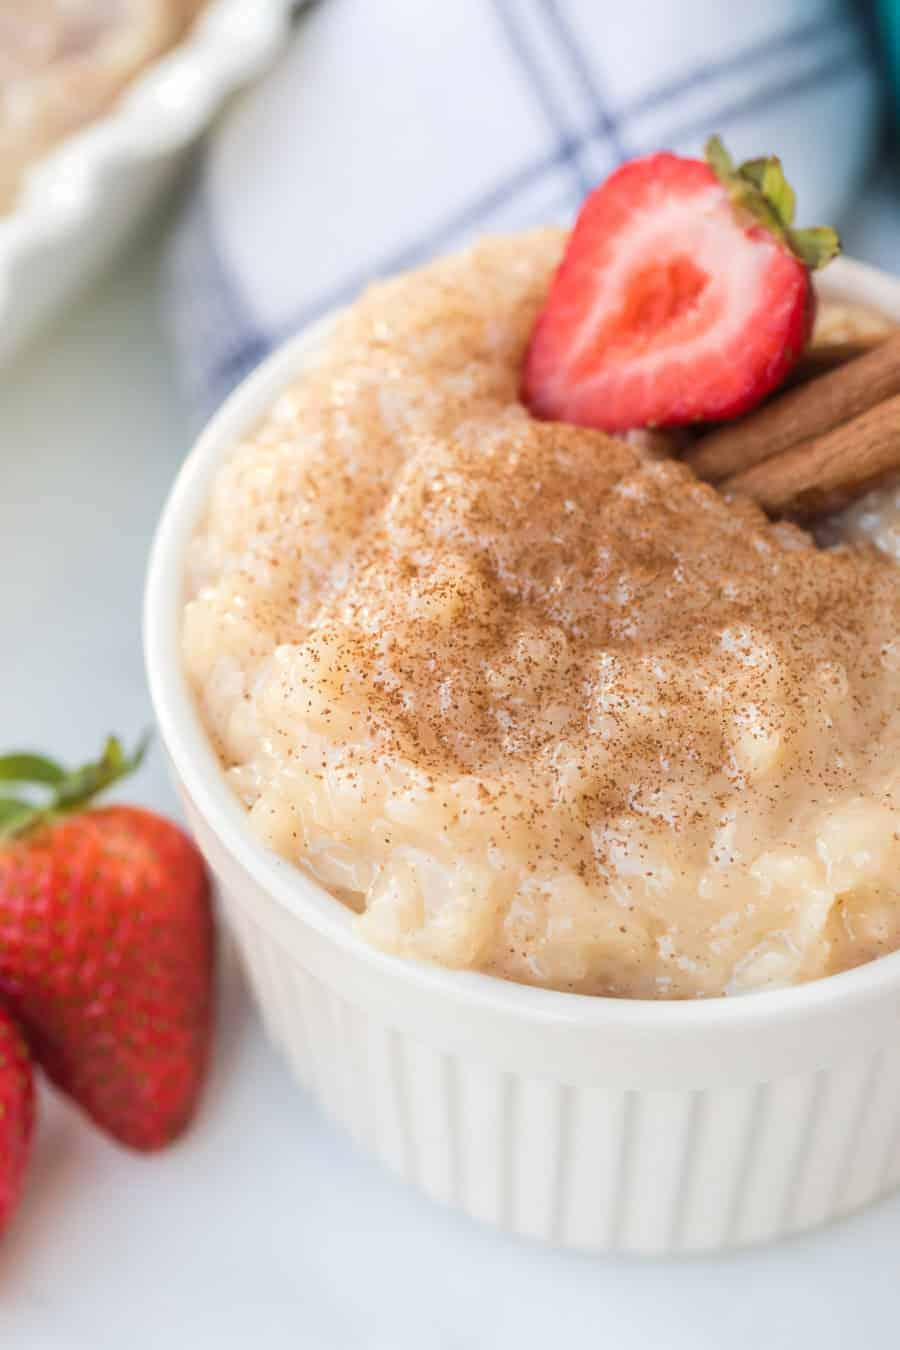 Rice pudding with strawberries in white ramekin